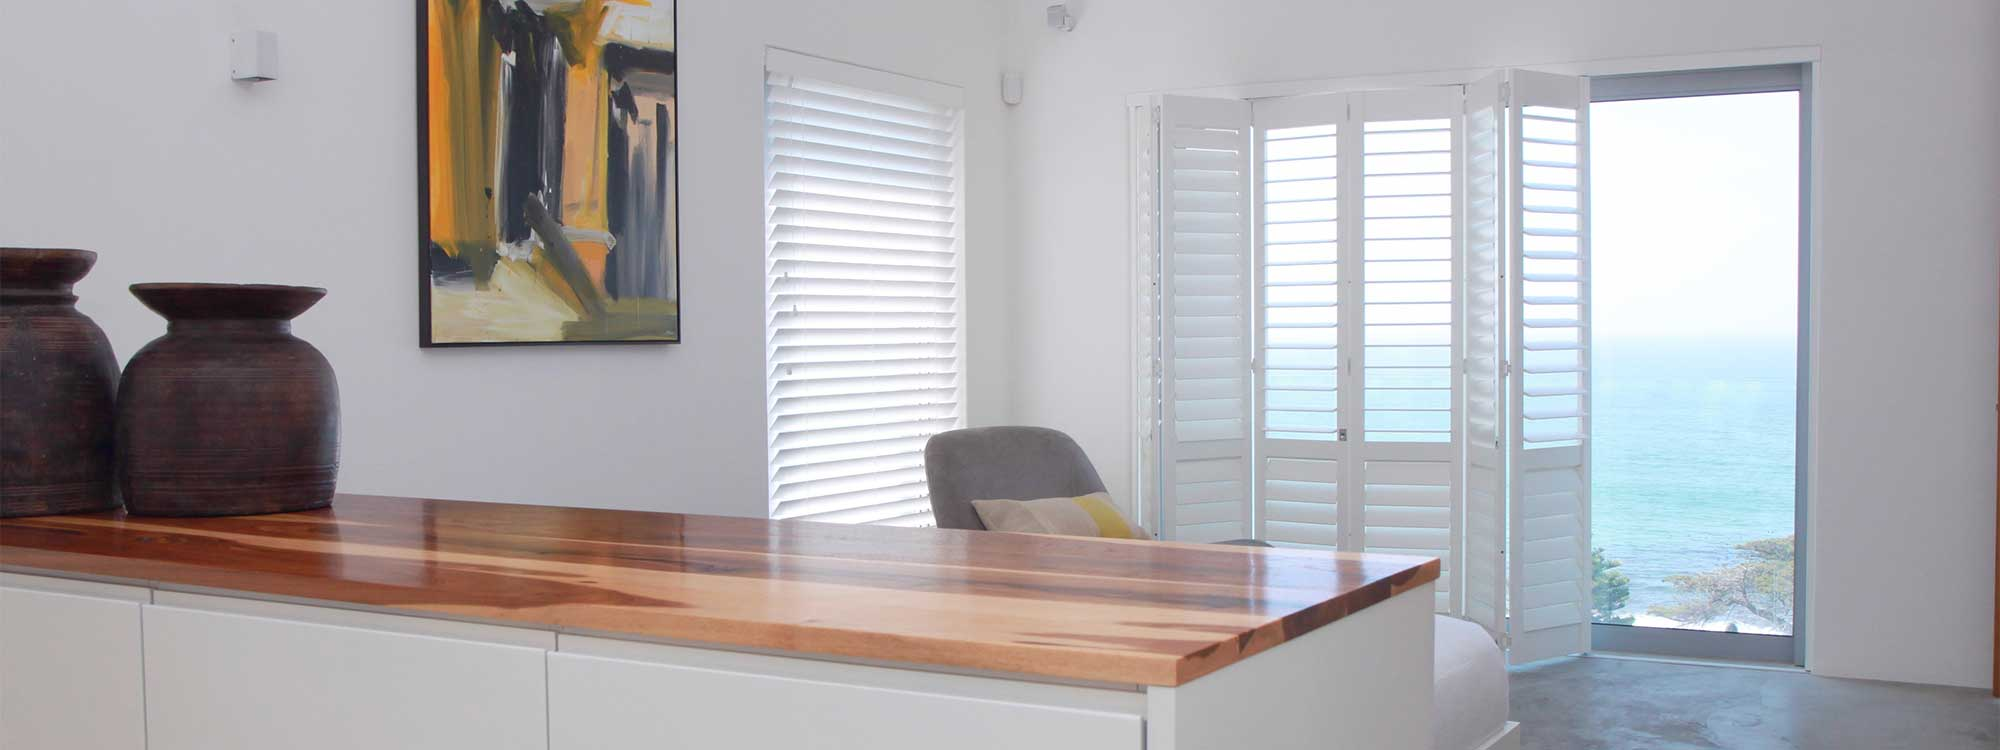 Decowood-shutters-living-area-kitchen